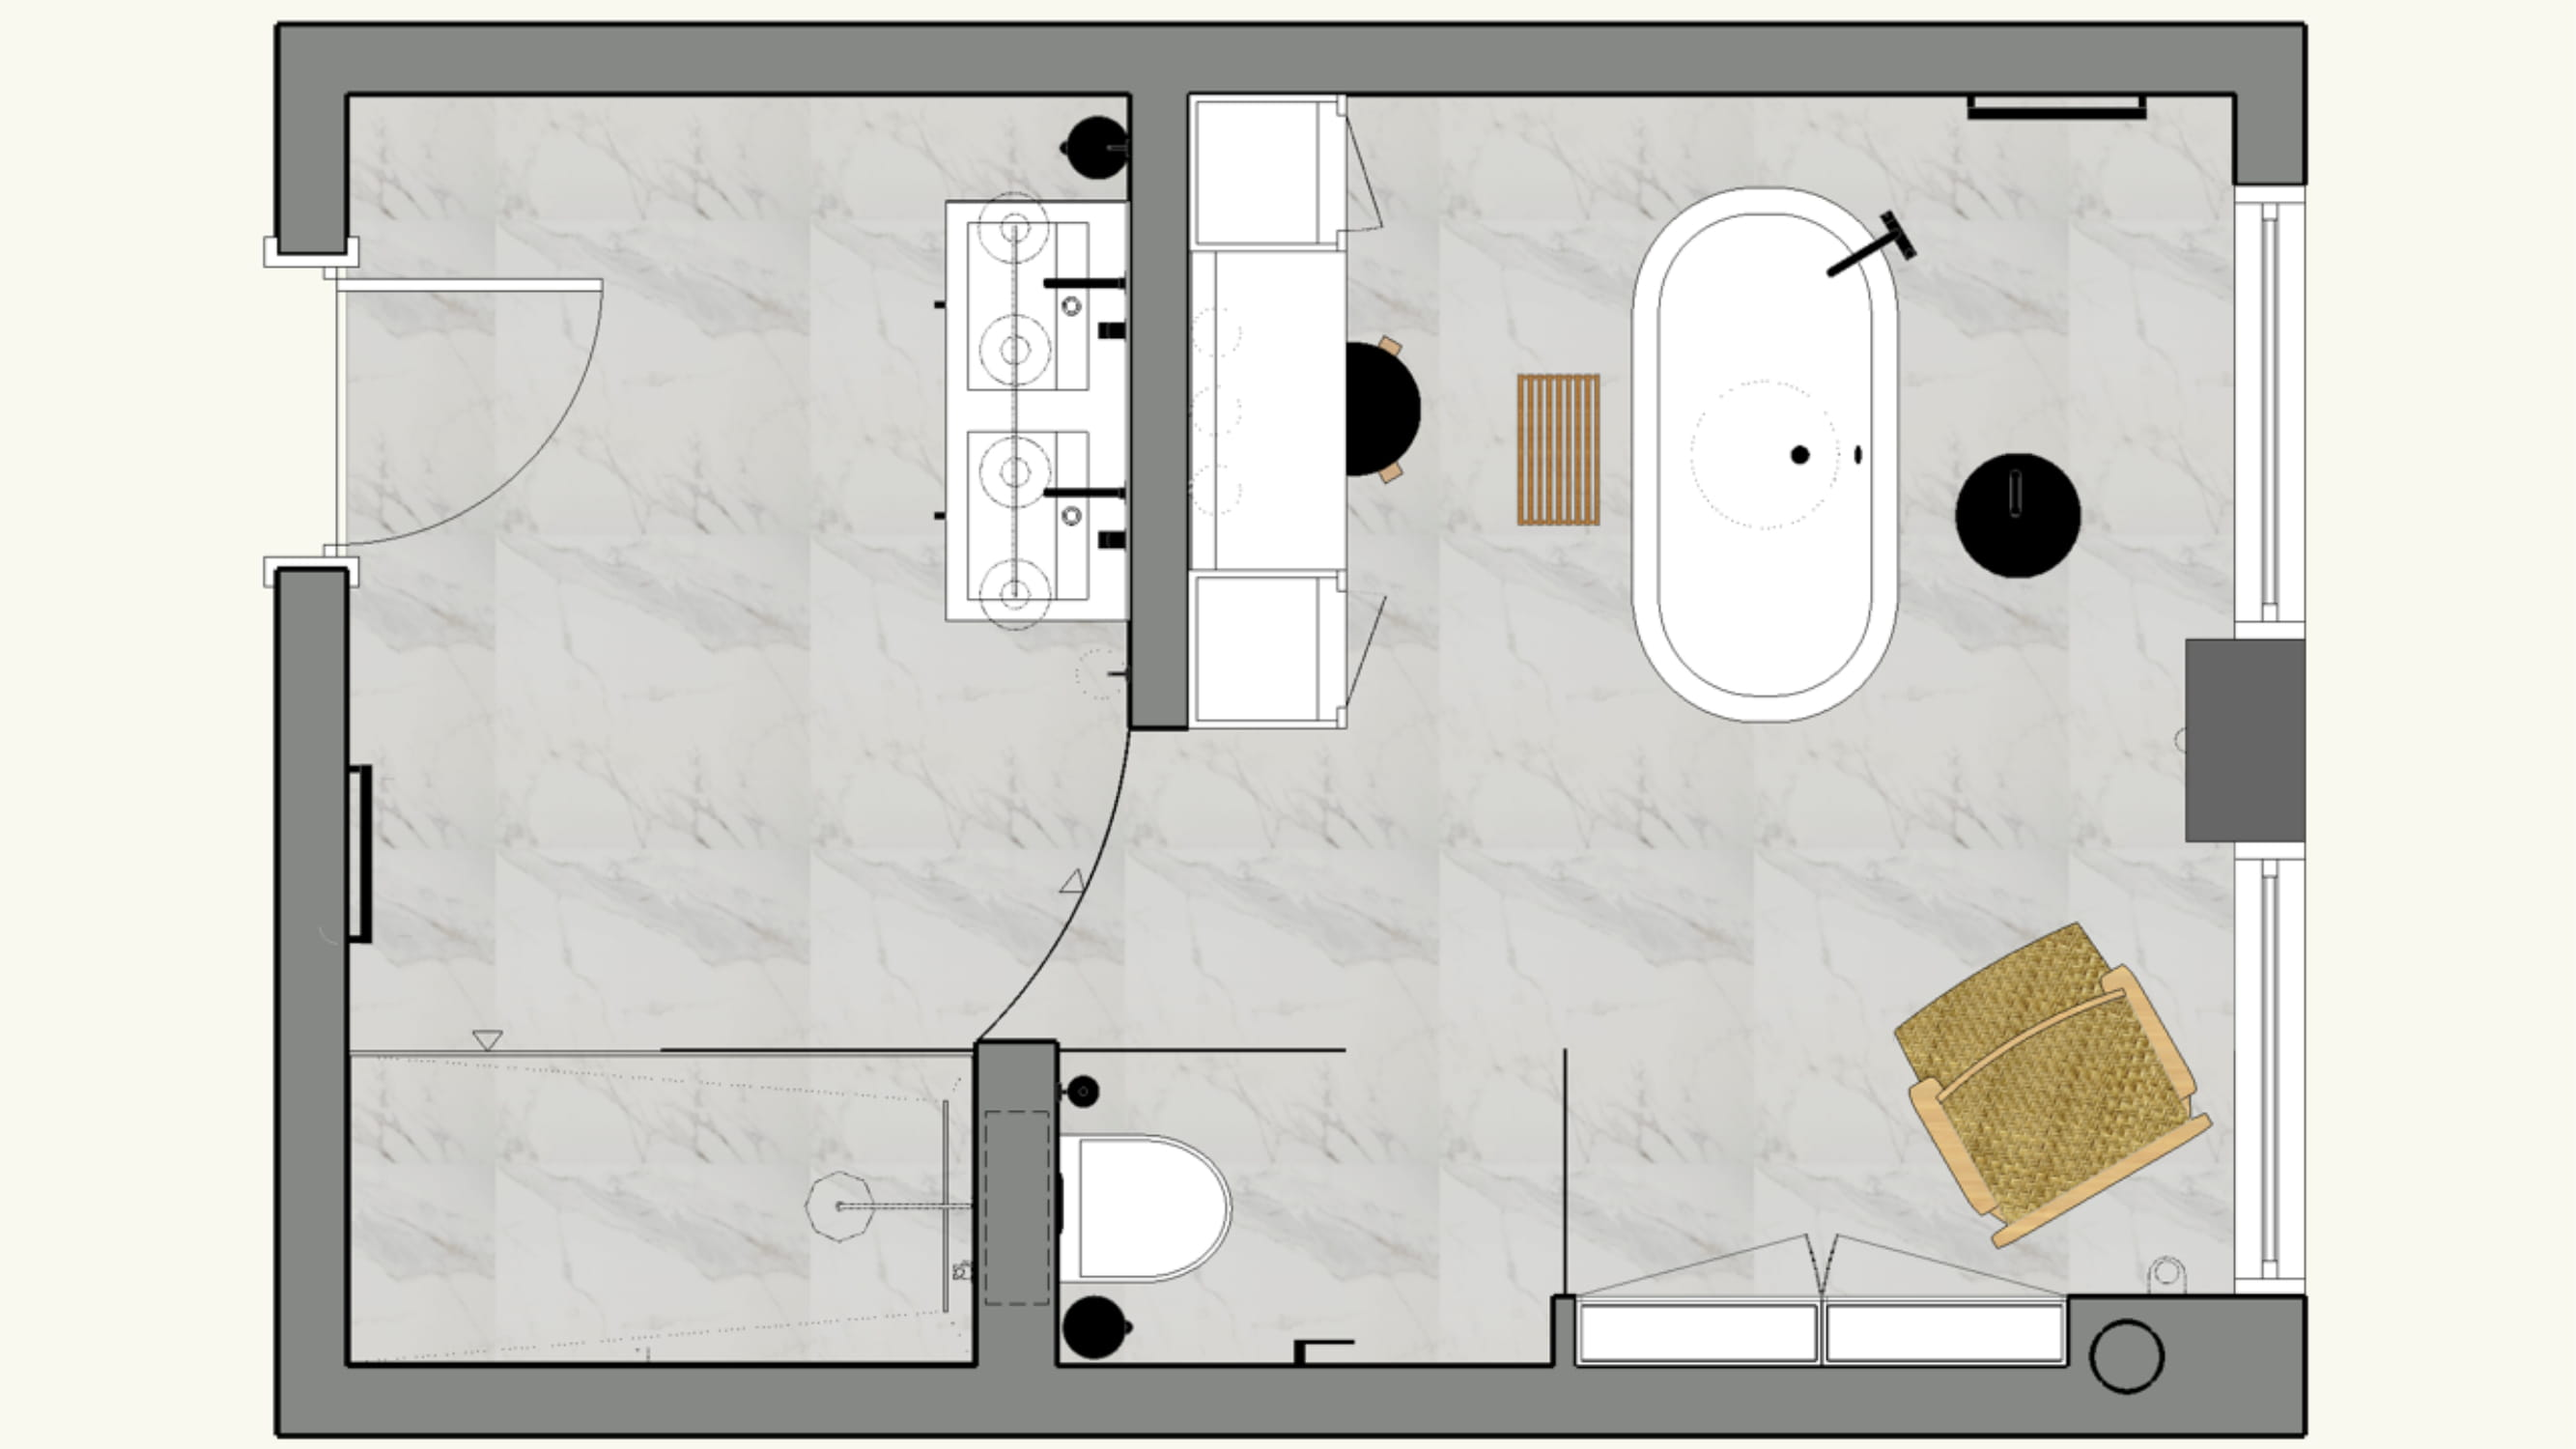 Birdseye view of floor plan for a bathroom space